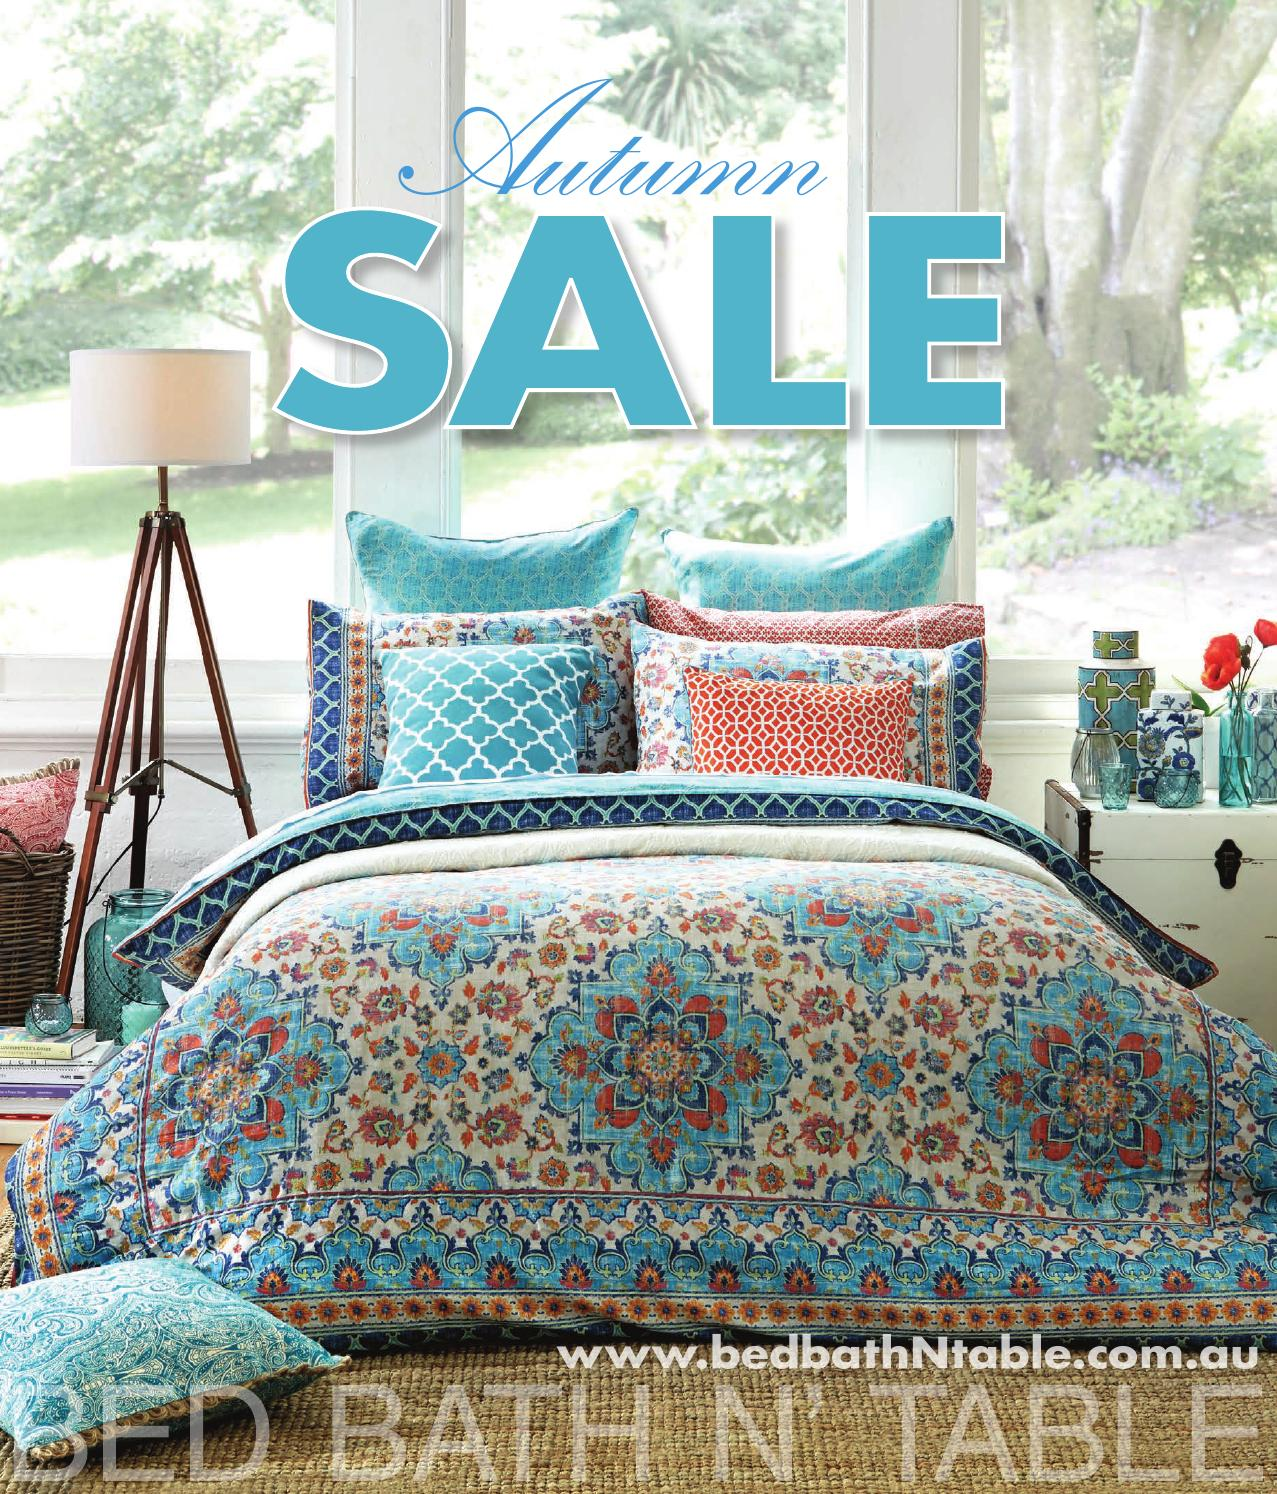 Australian Online Catalogues Bed Bath N 39 Table April Catalogue 2015 By Bed Bath N